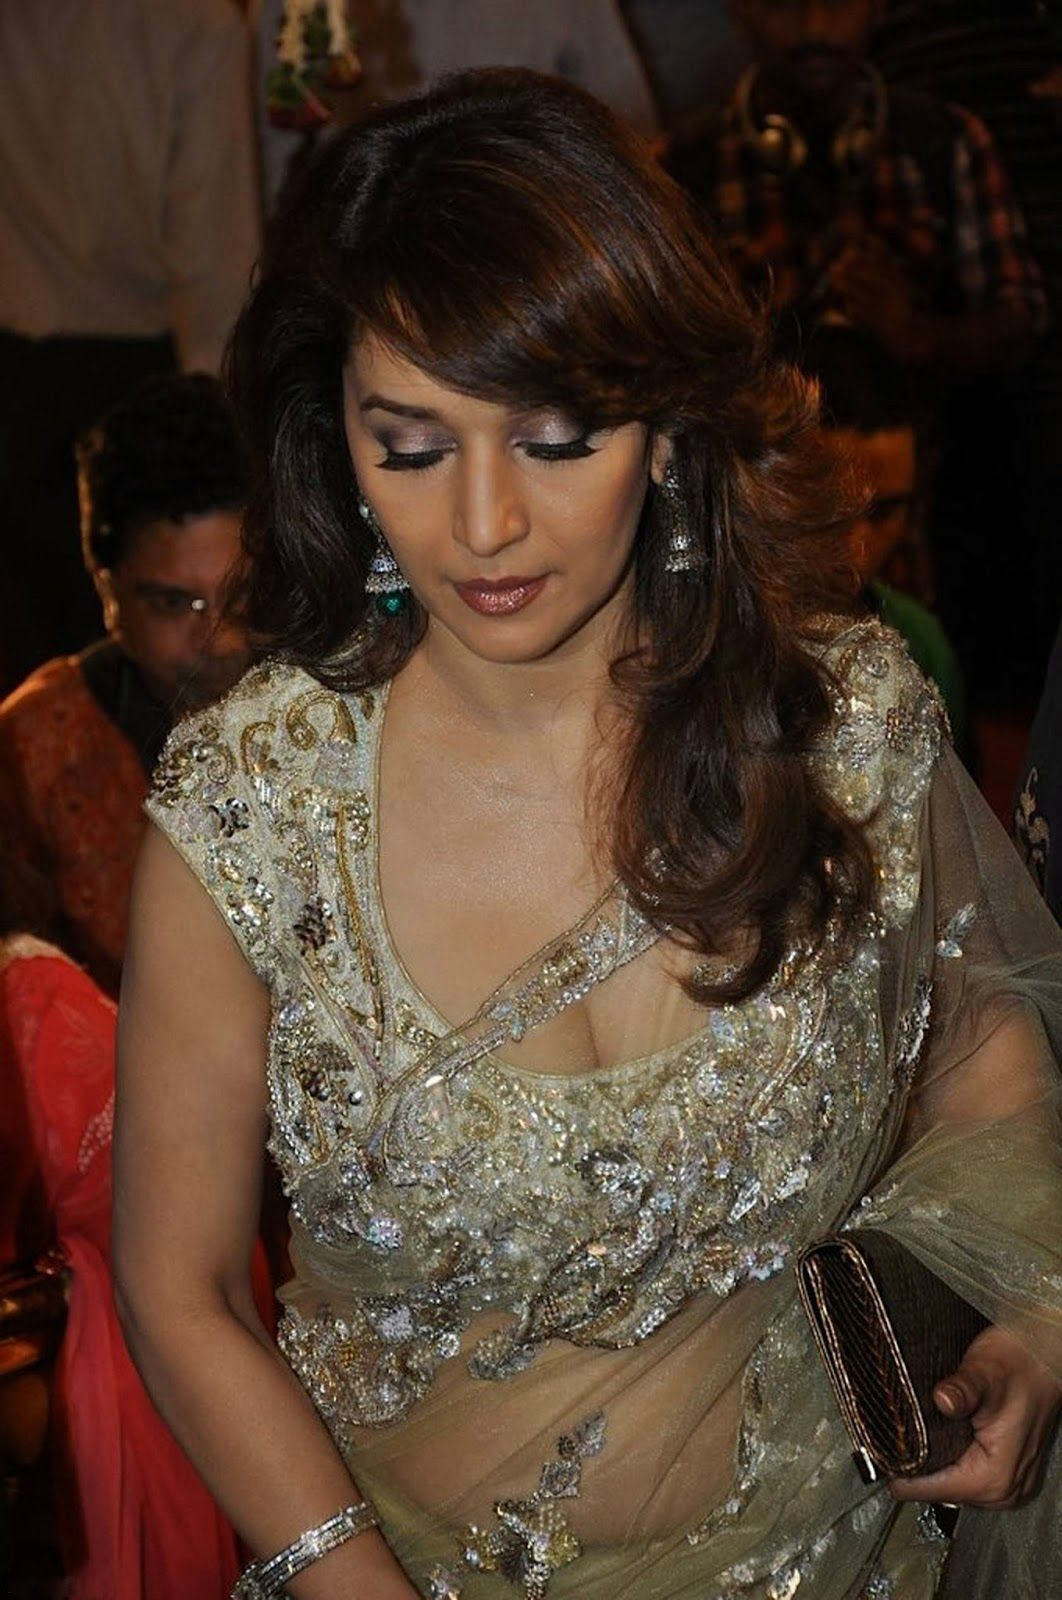 Madhuri dixit full sexy photo